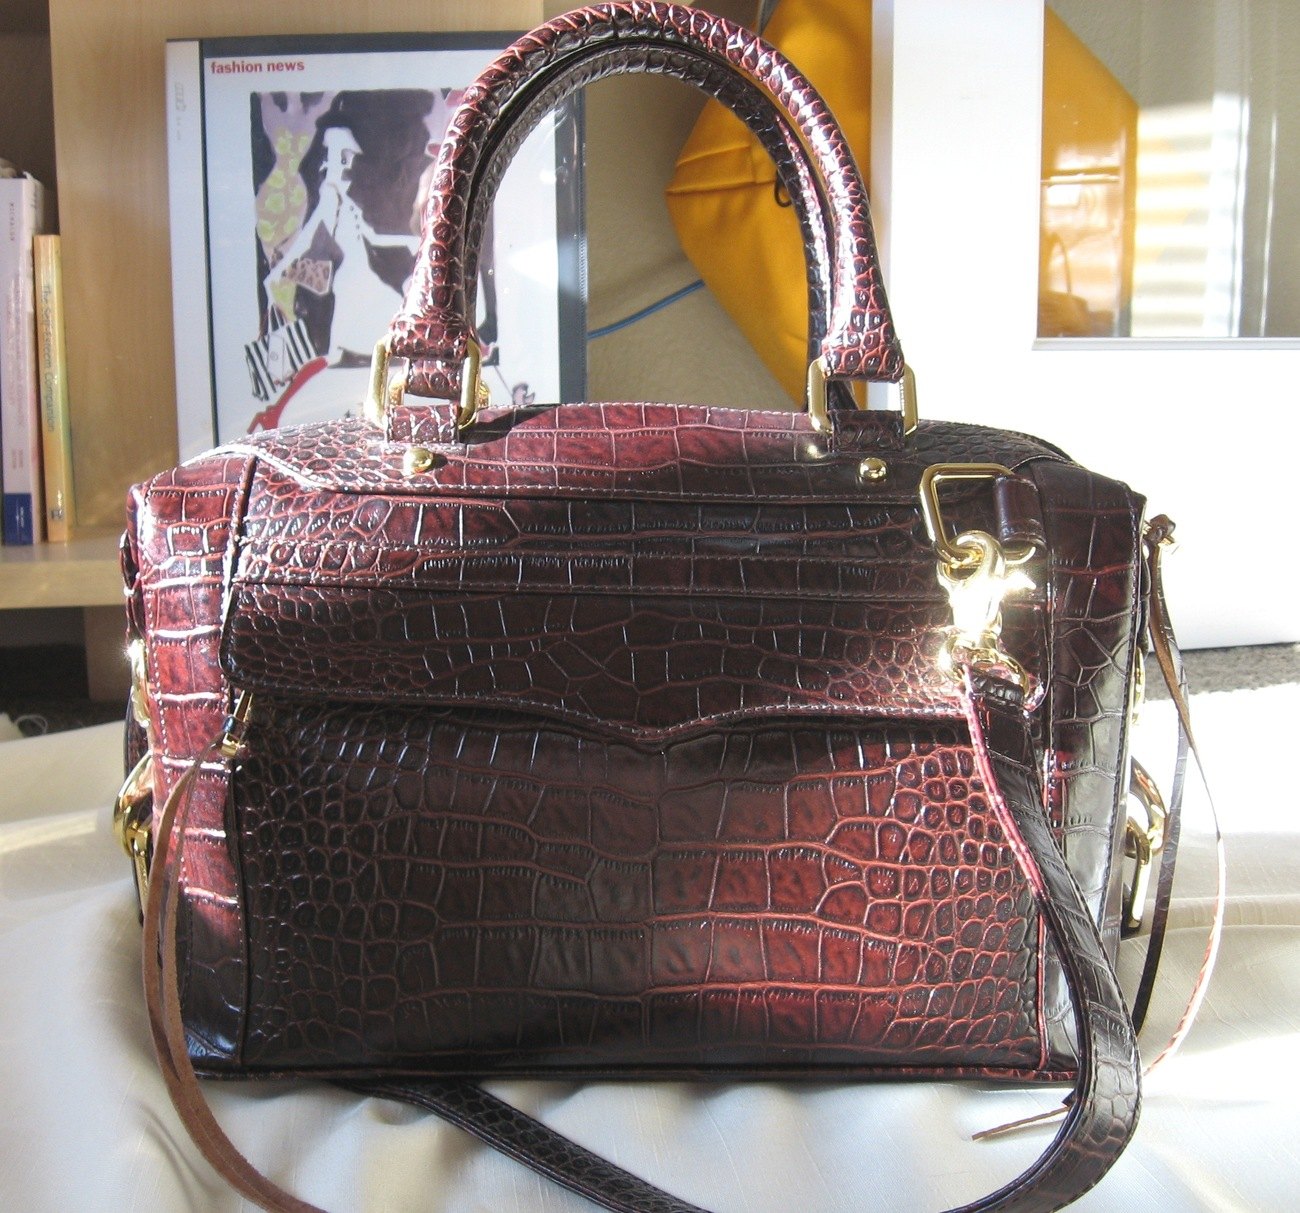 Primary image for Rebecca Minkoff Mini Morning After Bag - Brown Embossed Croc